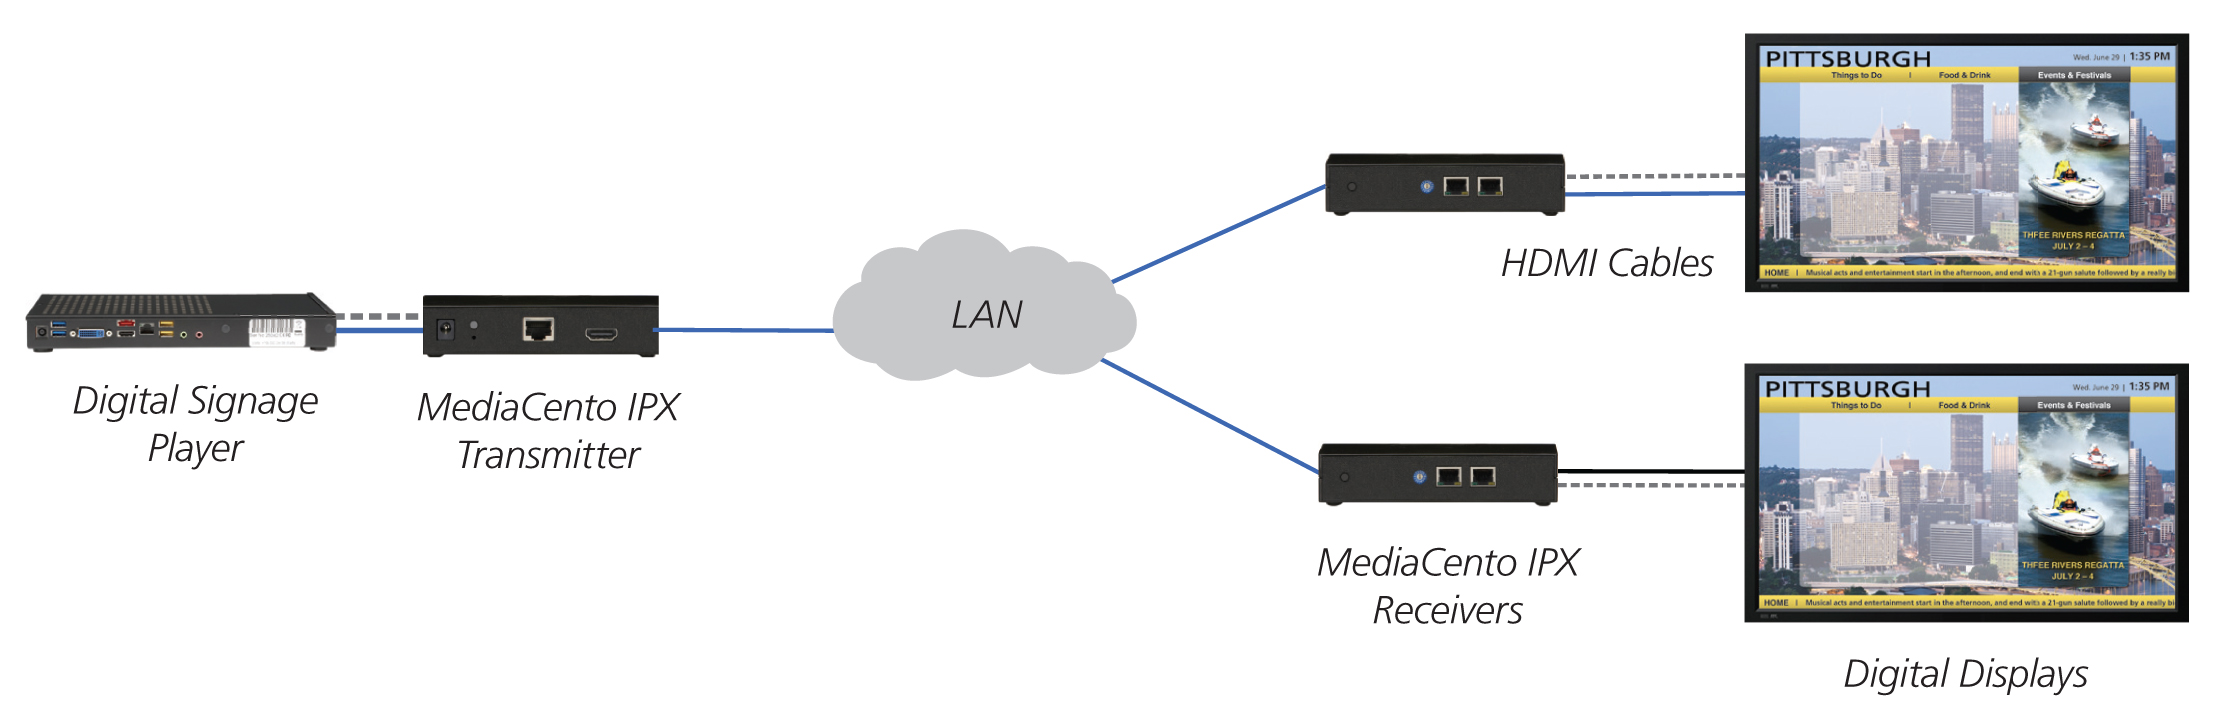 MediaCentoIPX_Multicast-configuration---diagram